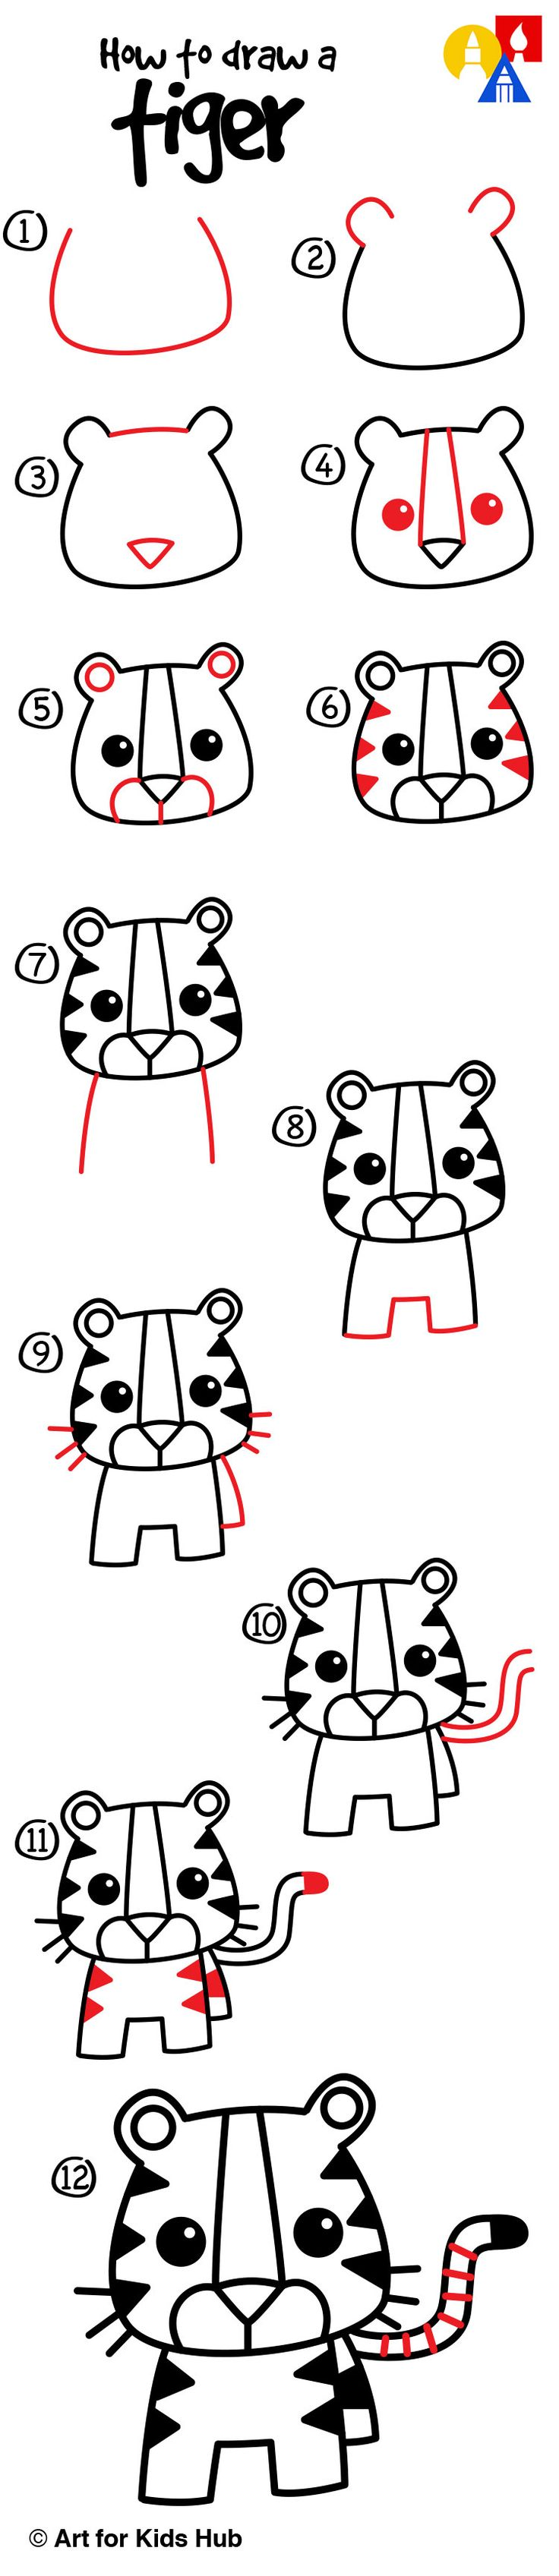 how to draw a cartoon tiger art for kids hub tigers and cartoon - Easy Drawing Pictures For Kids